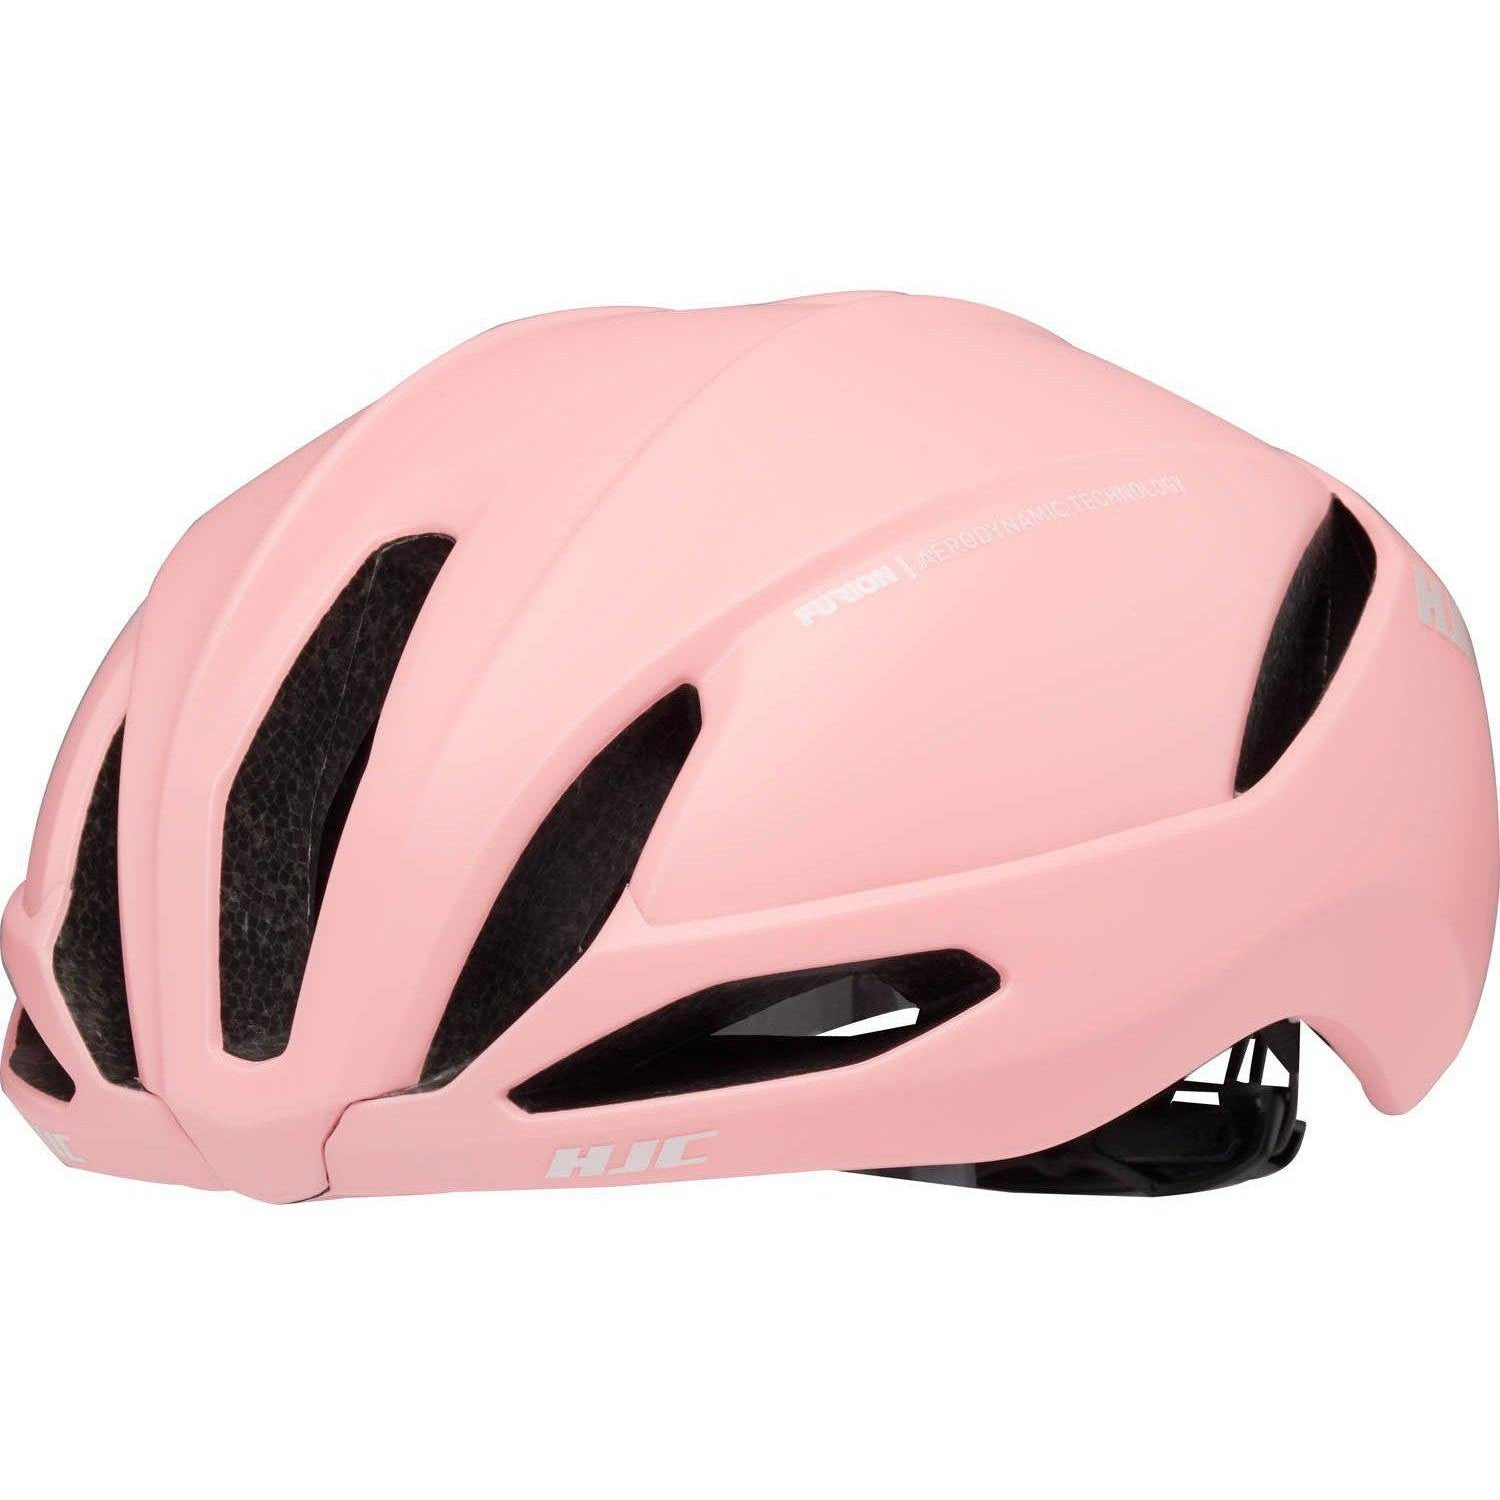 HJC-HJC Furion 2.0 Road Cycling Helmet-Fade Grey-S-HJC81212301-saddleback-elite-performance-cycling